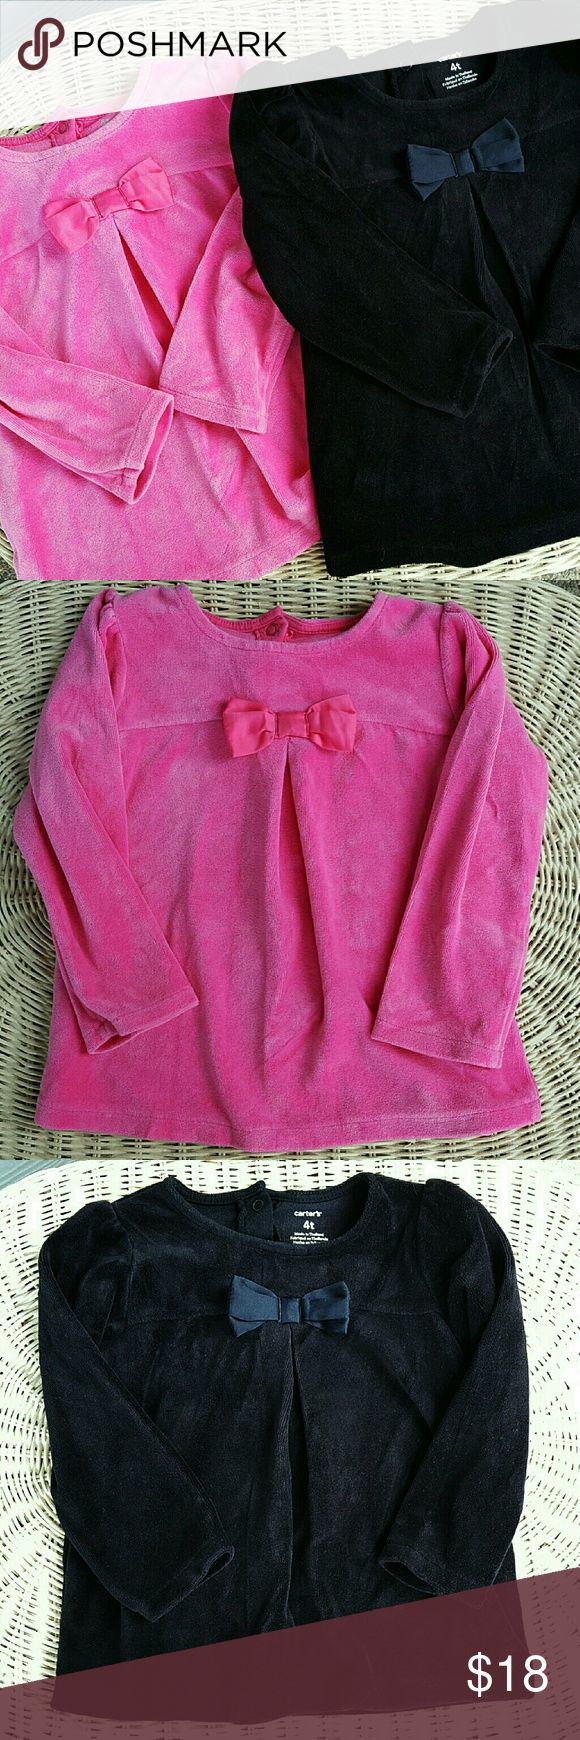 Toddler Girls Velour Top Bundle Great condition!! Super cute and cozy ?? Carter's Shirts & Tops Tees - Long Sleeve